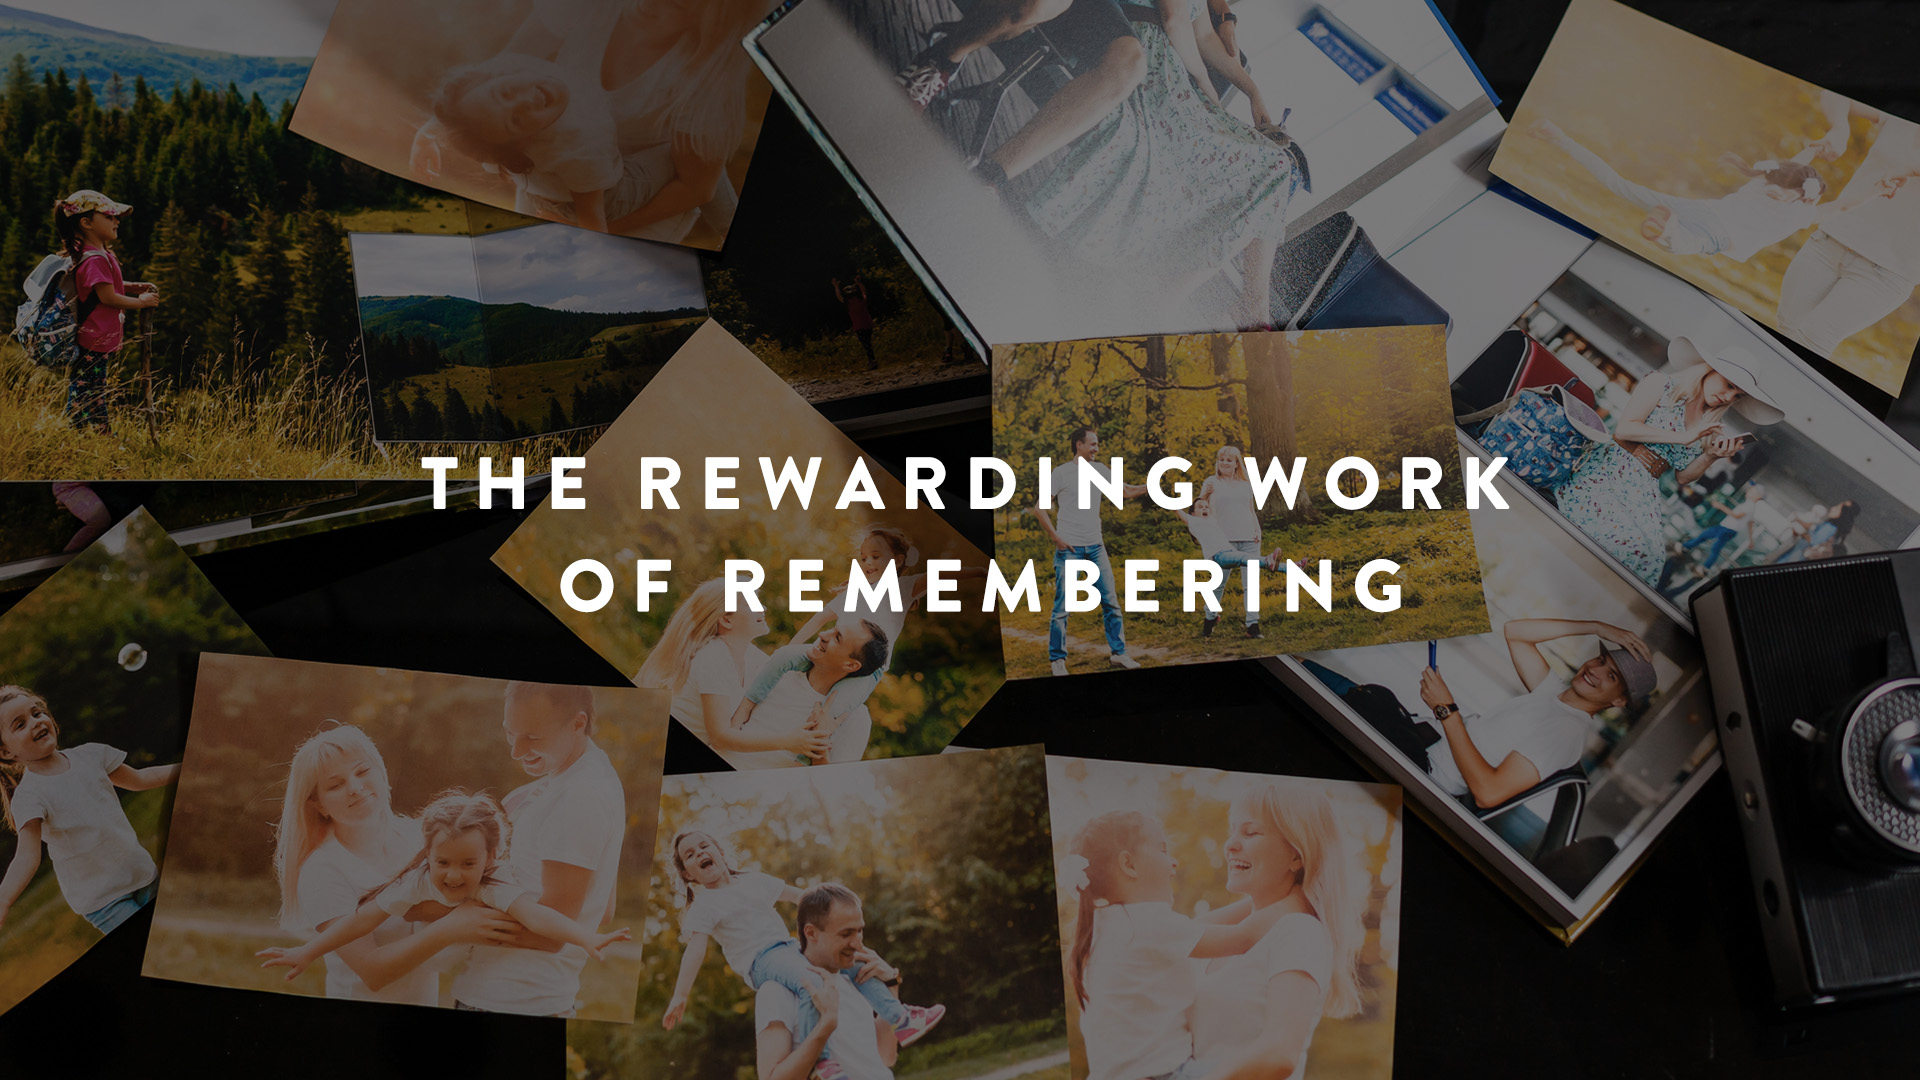 The rewarding work of remembering